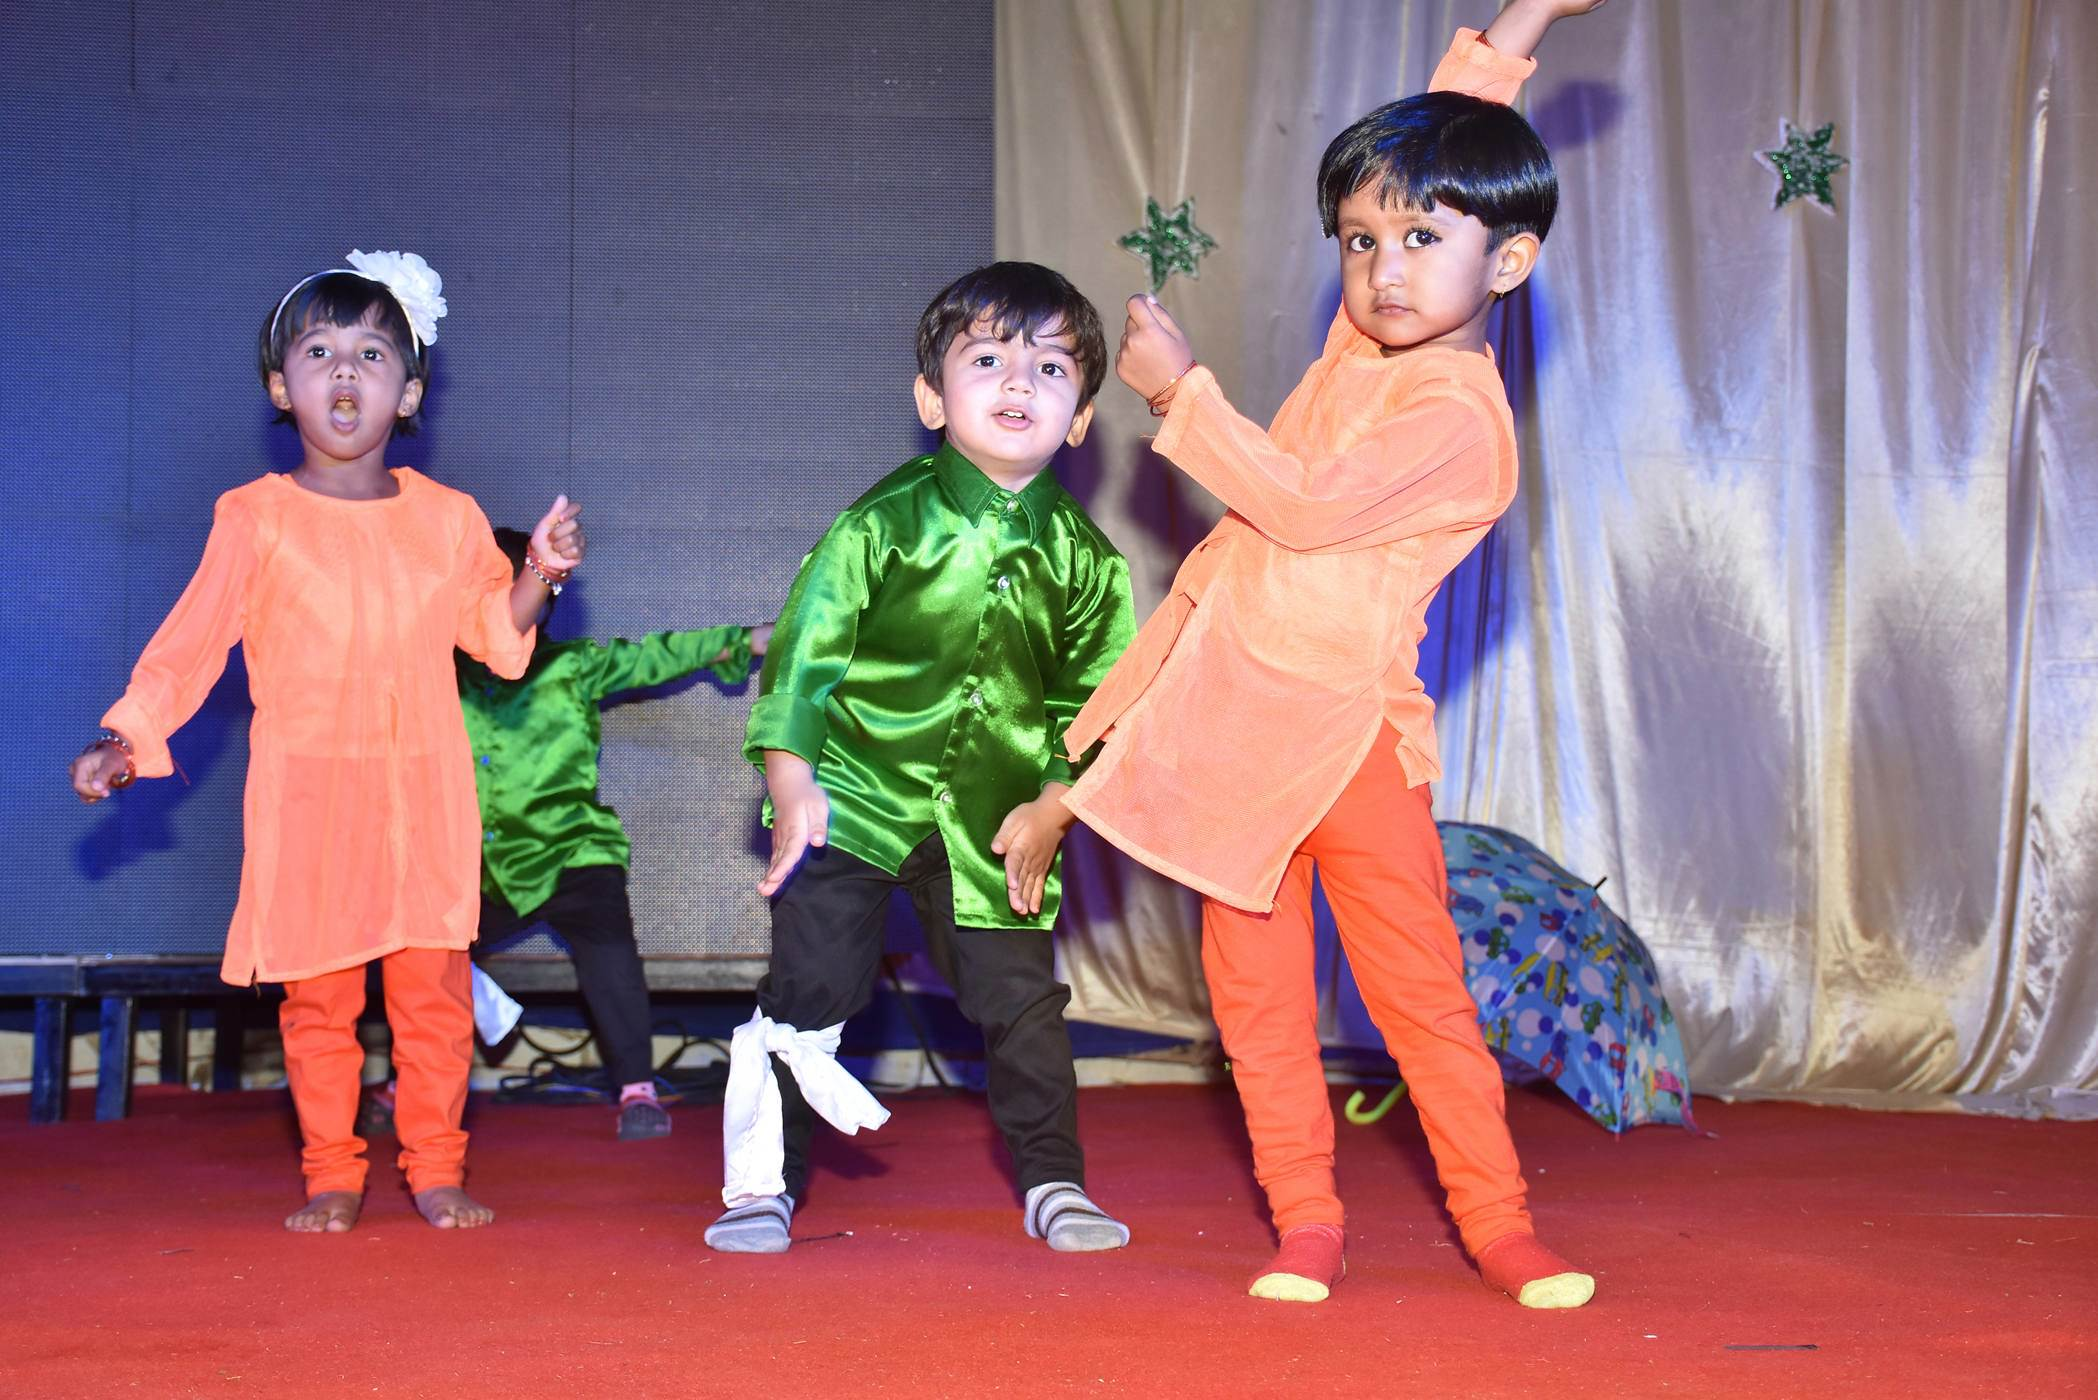 vijaya convent dance performance annual gathering of kids in the school